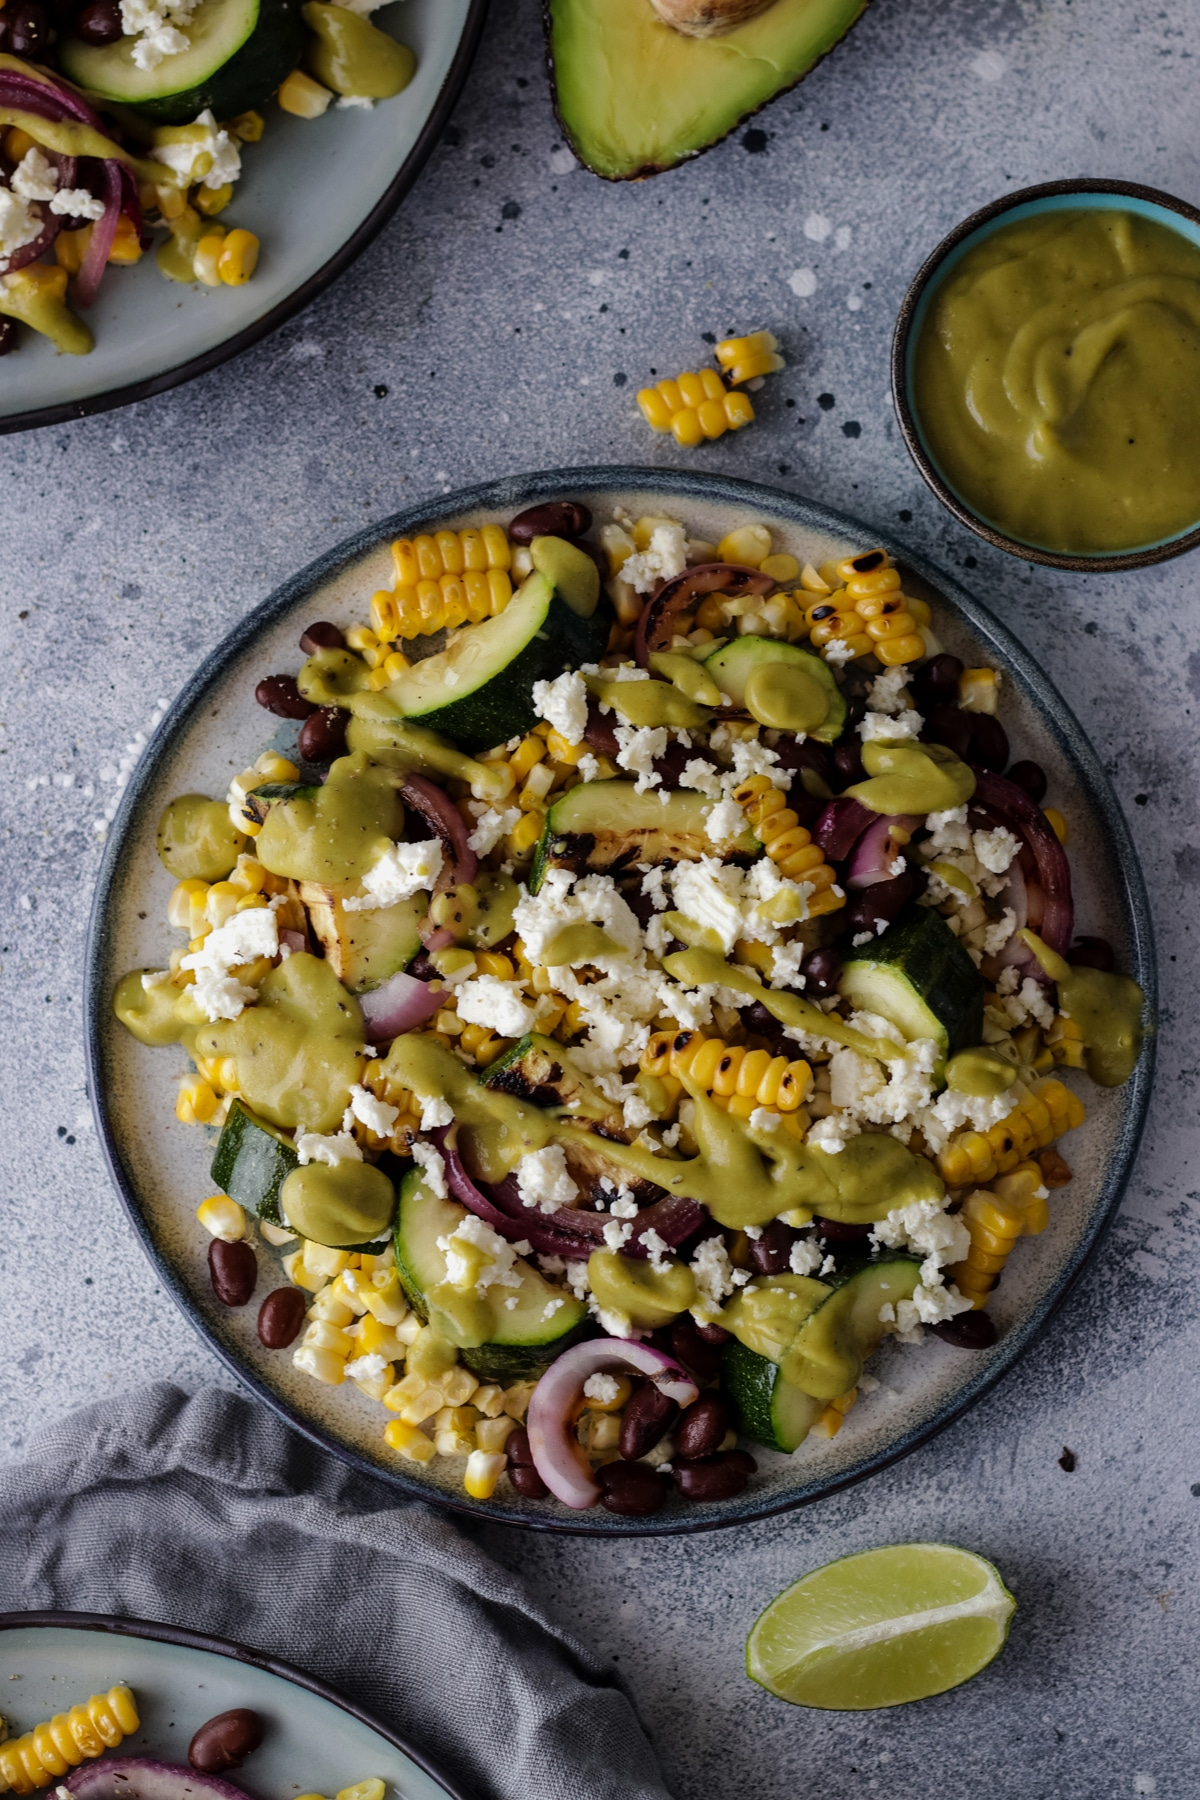 A Plate with Grilled Corn and Black Bean Salad Next to a Bowl with Avocado Dressing